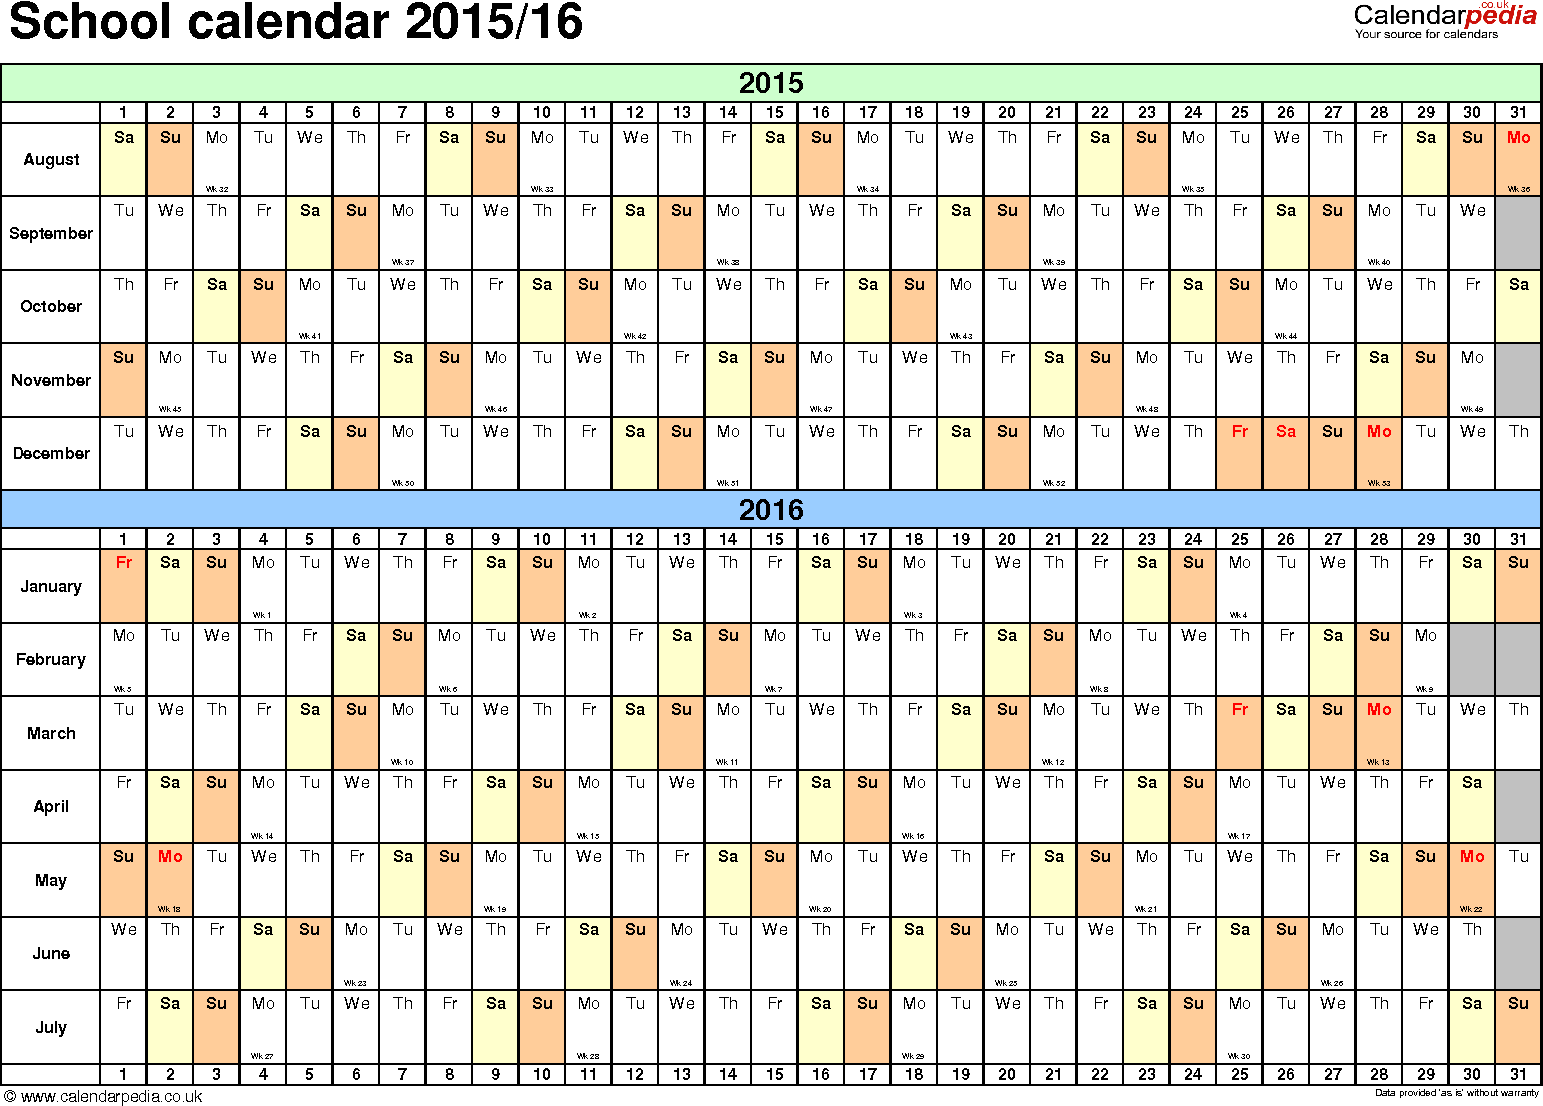 Download Template 3: School year calendars 2015/16 for Microsoft Word, landscape orientation, A4, 1 page, months horizontally, days vertically, with UK bank holidays and week numbers